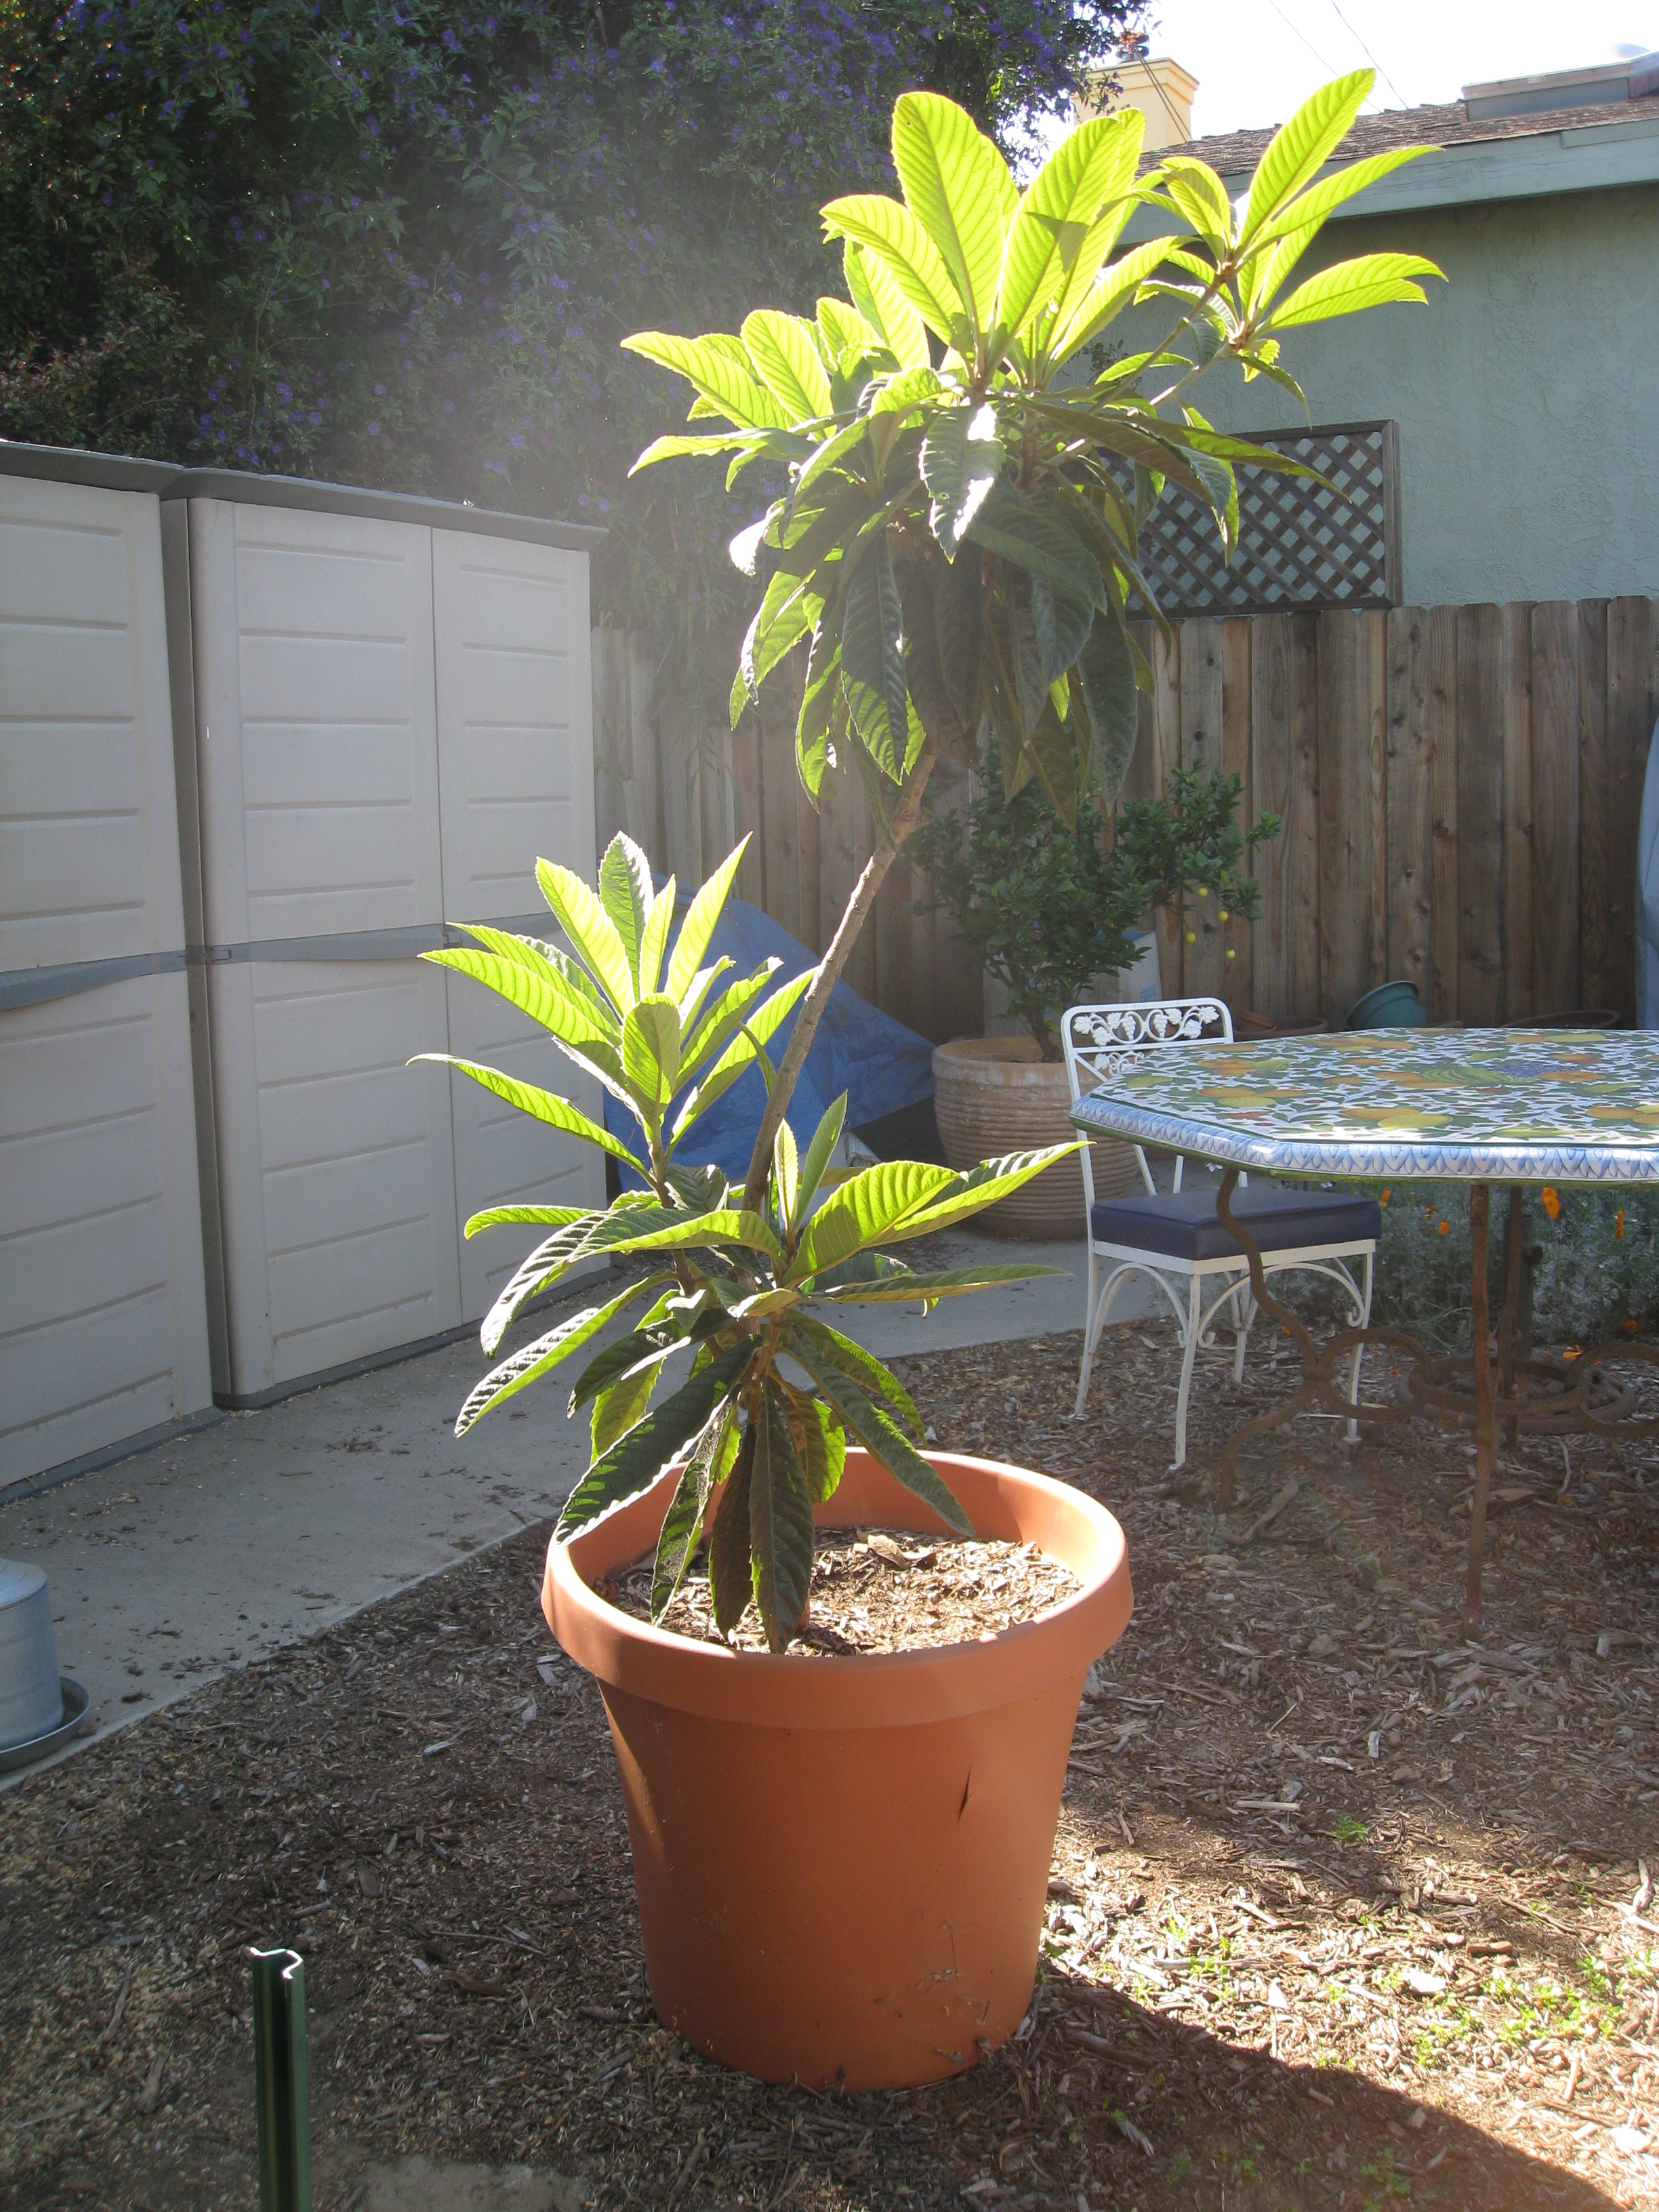 A transplant from a relative's yard.